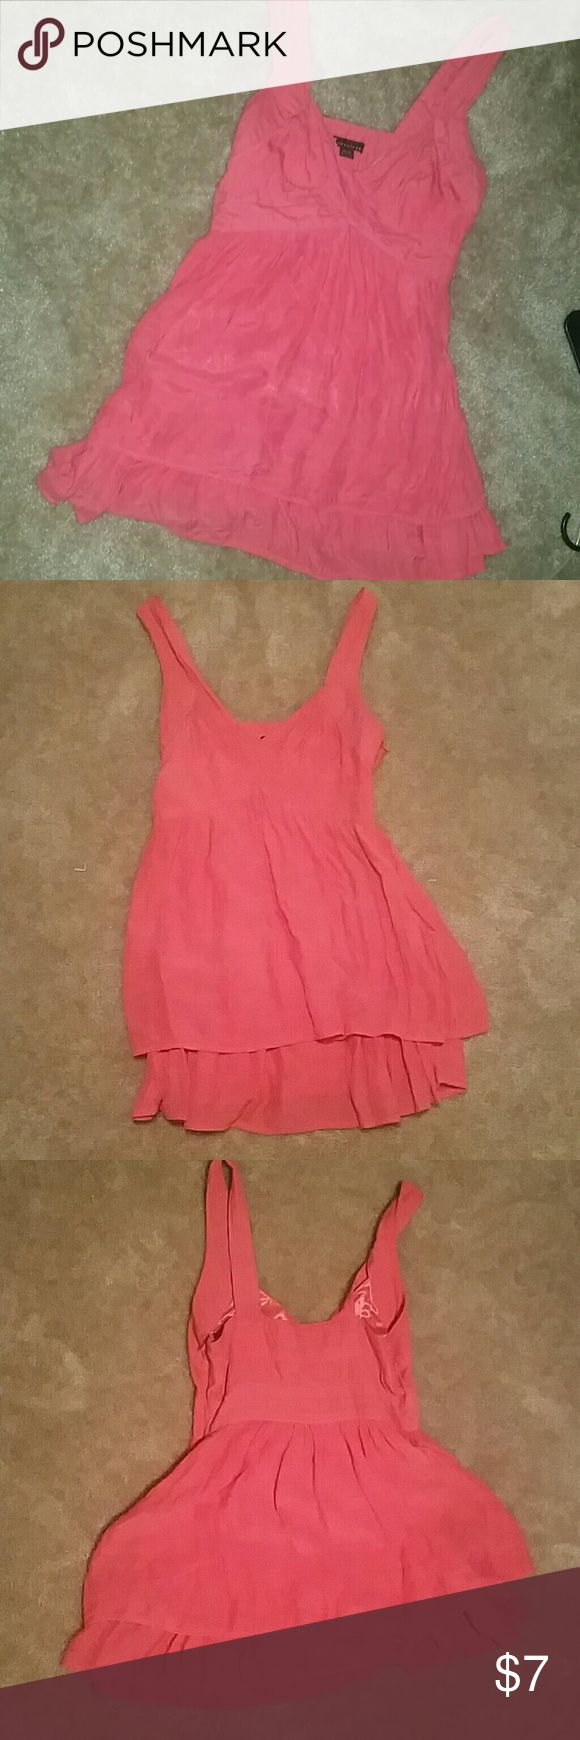 Medium-sized mini dress Salmon Color Salmon colored mini dress with semi ruffle underlay Forever 21 Dresses Mini